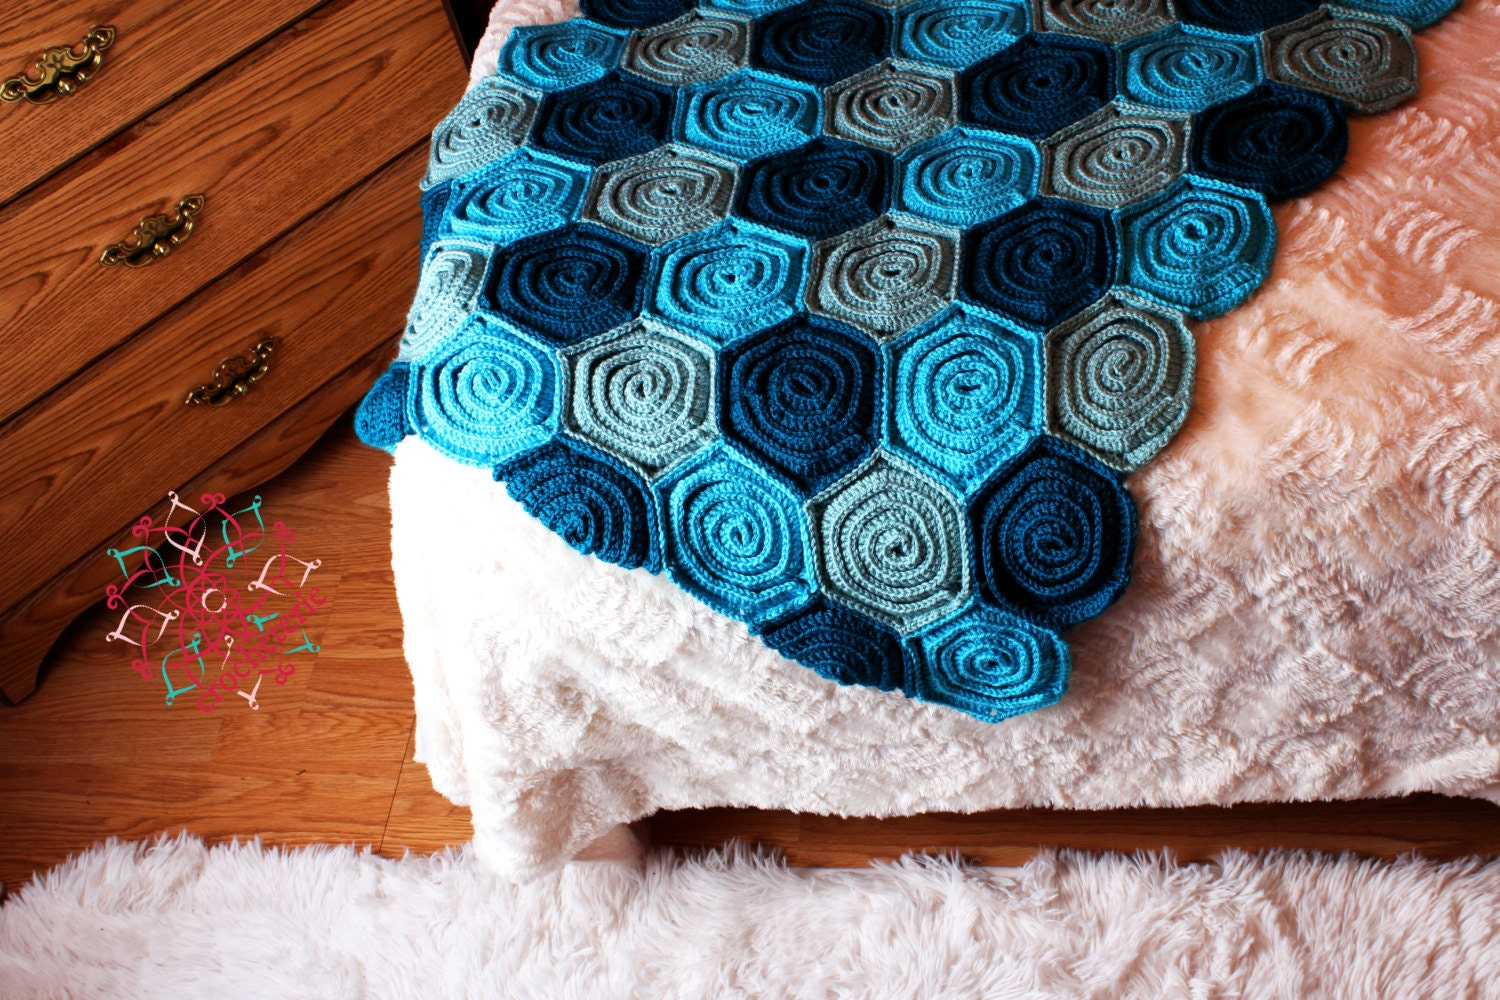 Free Crochet Pattern Rose Field : ROSE FIELD BLANKET CROCHET PATTERN ? Free Crochet Patterns